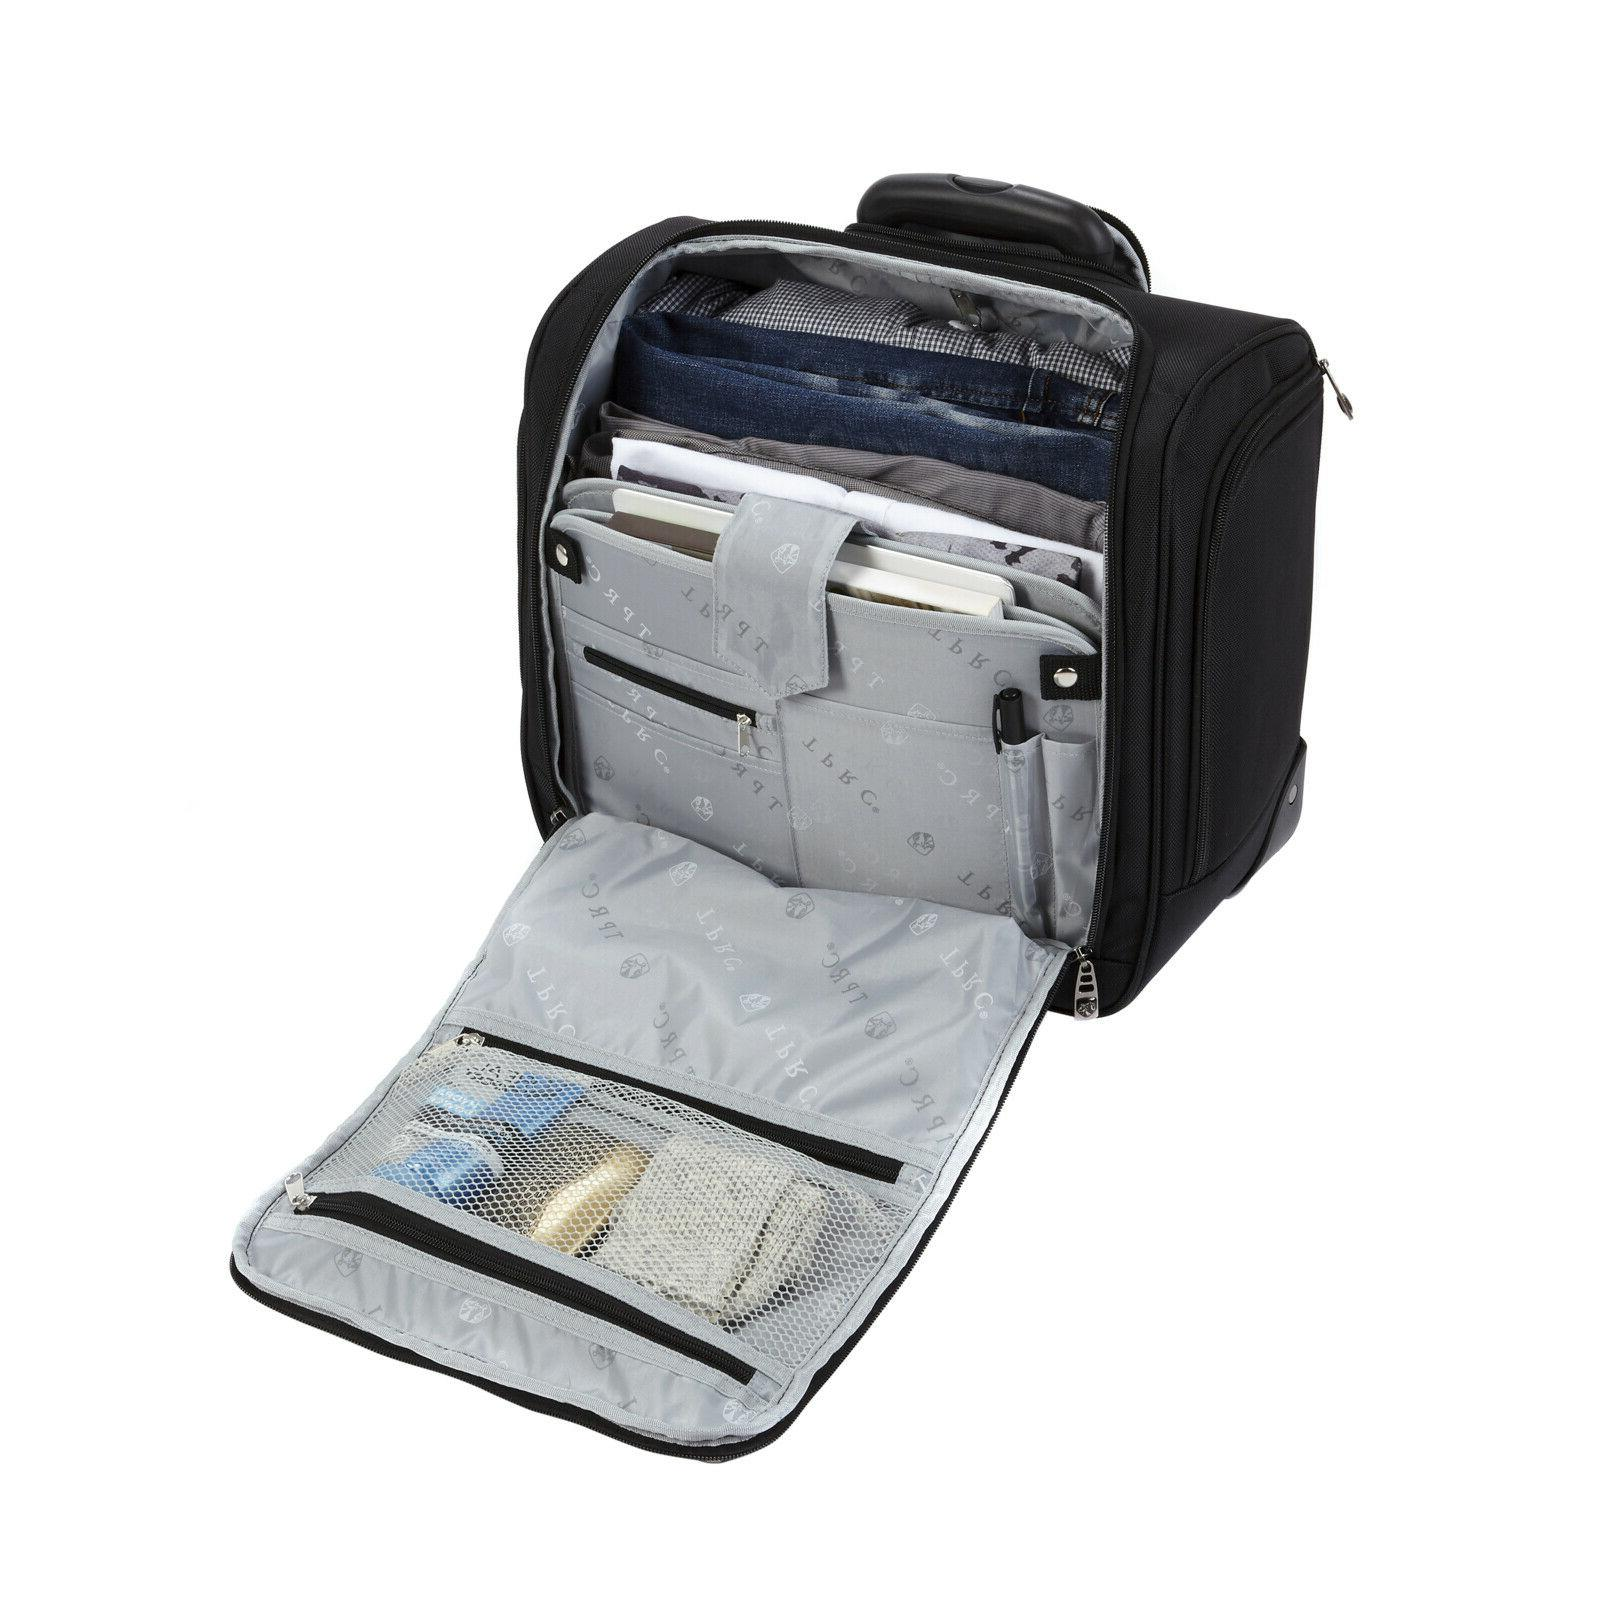 Business On Suitcase